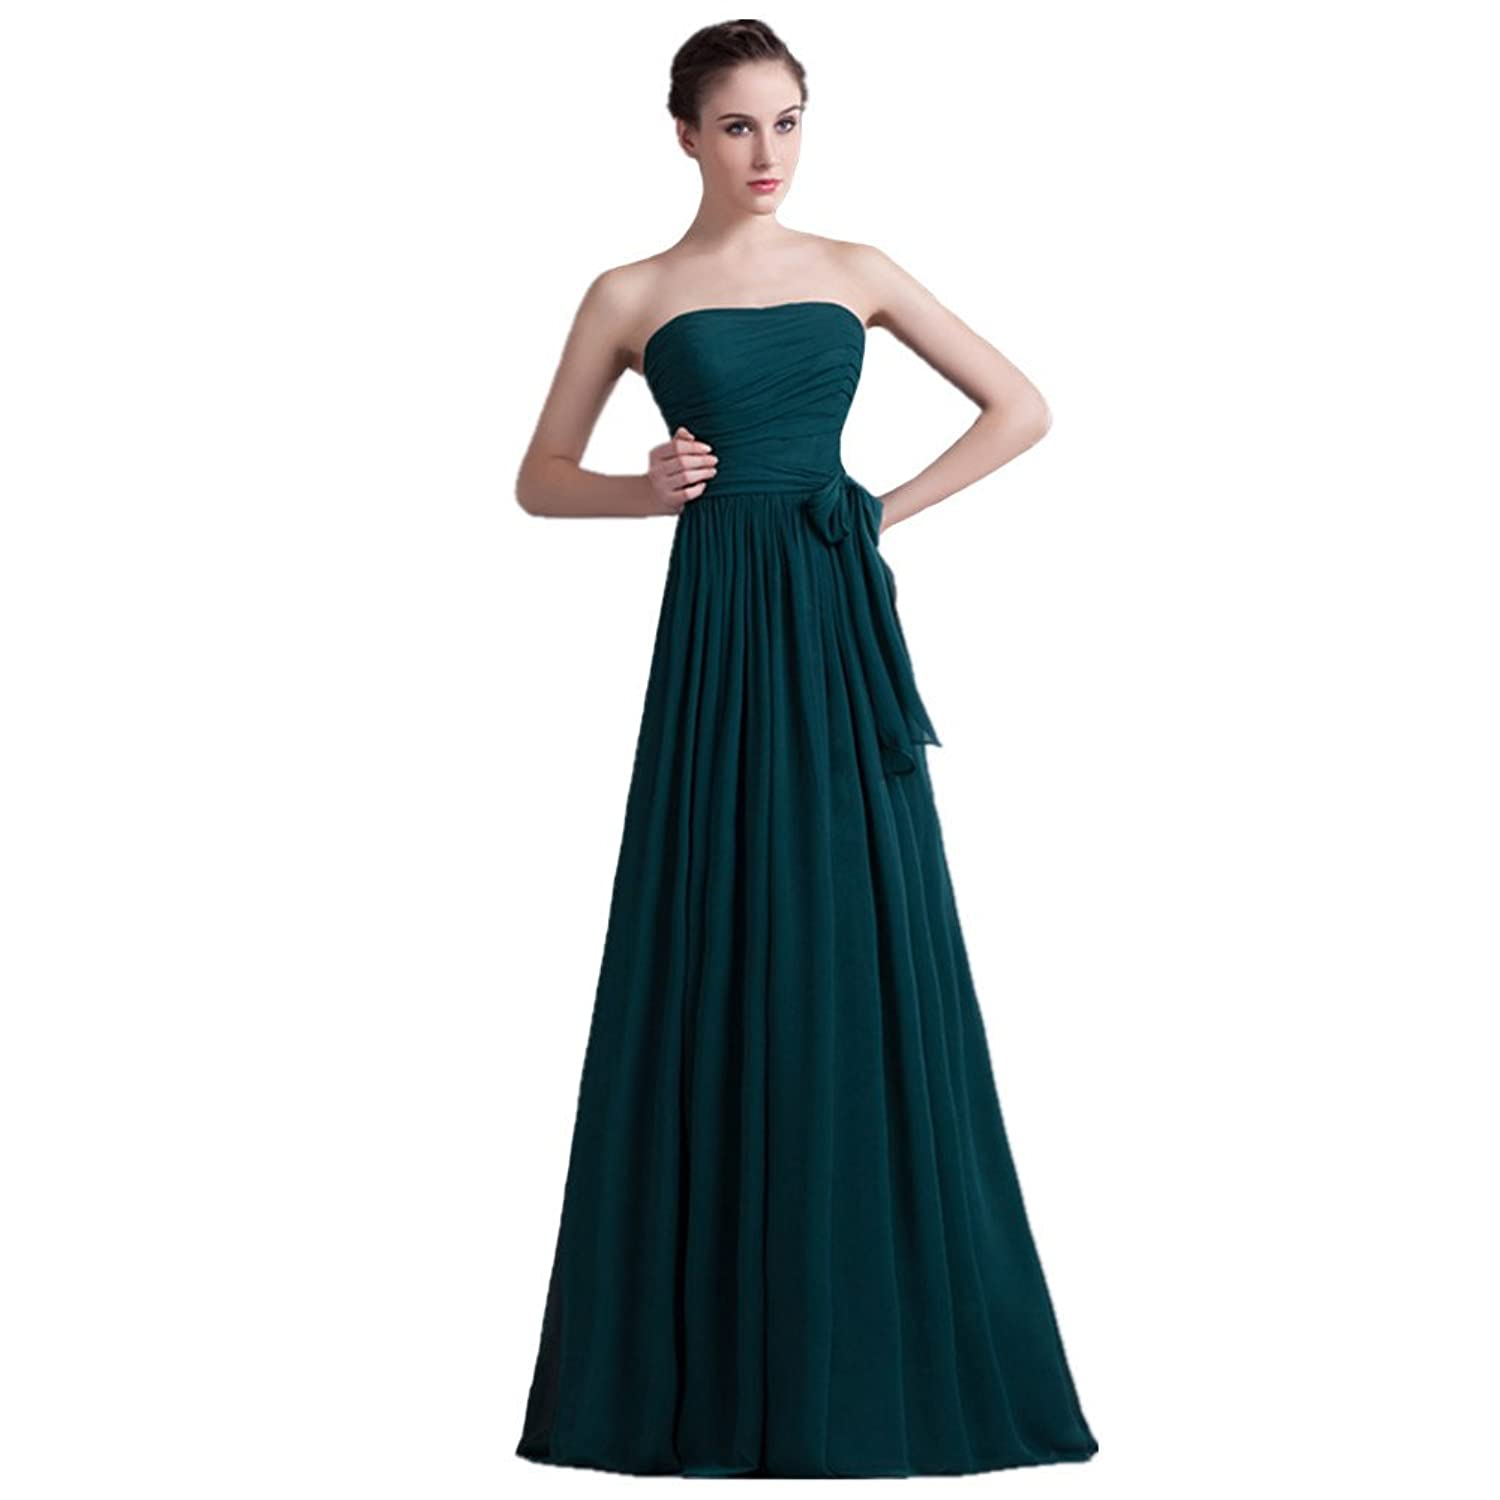 Jspoir Melodiz Women's Strapless Empire Full-length Bridesmaid Dress